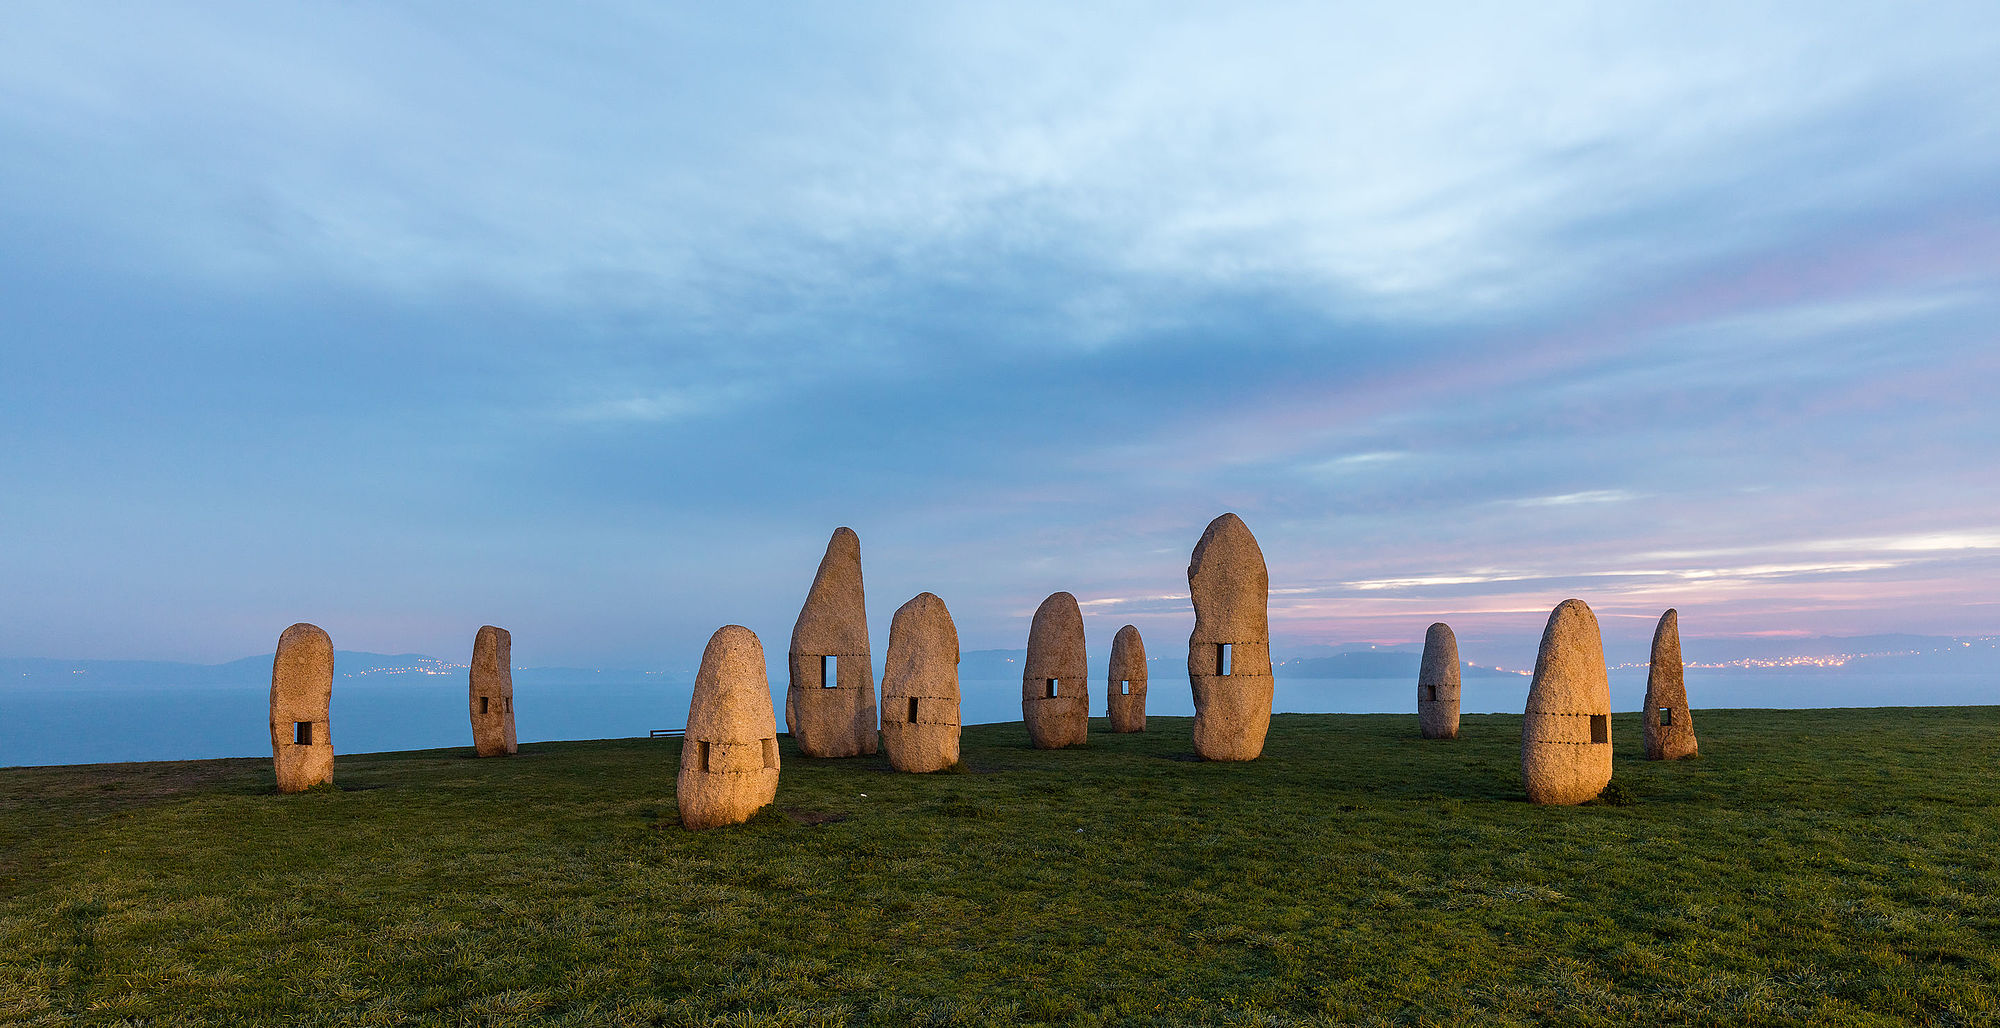 Family of Menhirs, Tower Park, La Coruña, Spain. The sculpture group, created in 1994, is work of artist Manolo Paz. The holes in the rocks are designed to frame different views of the park and the bay through them.